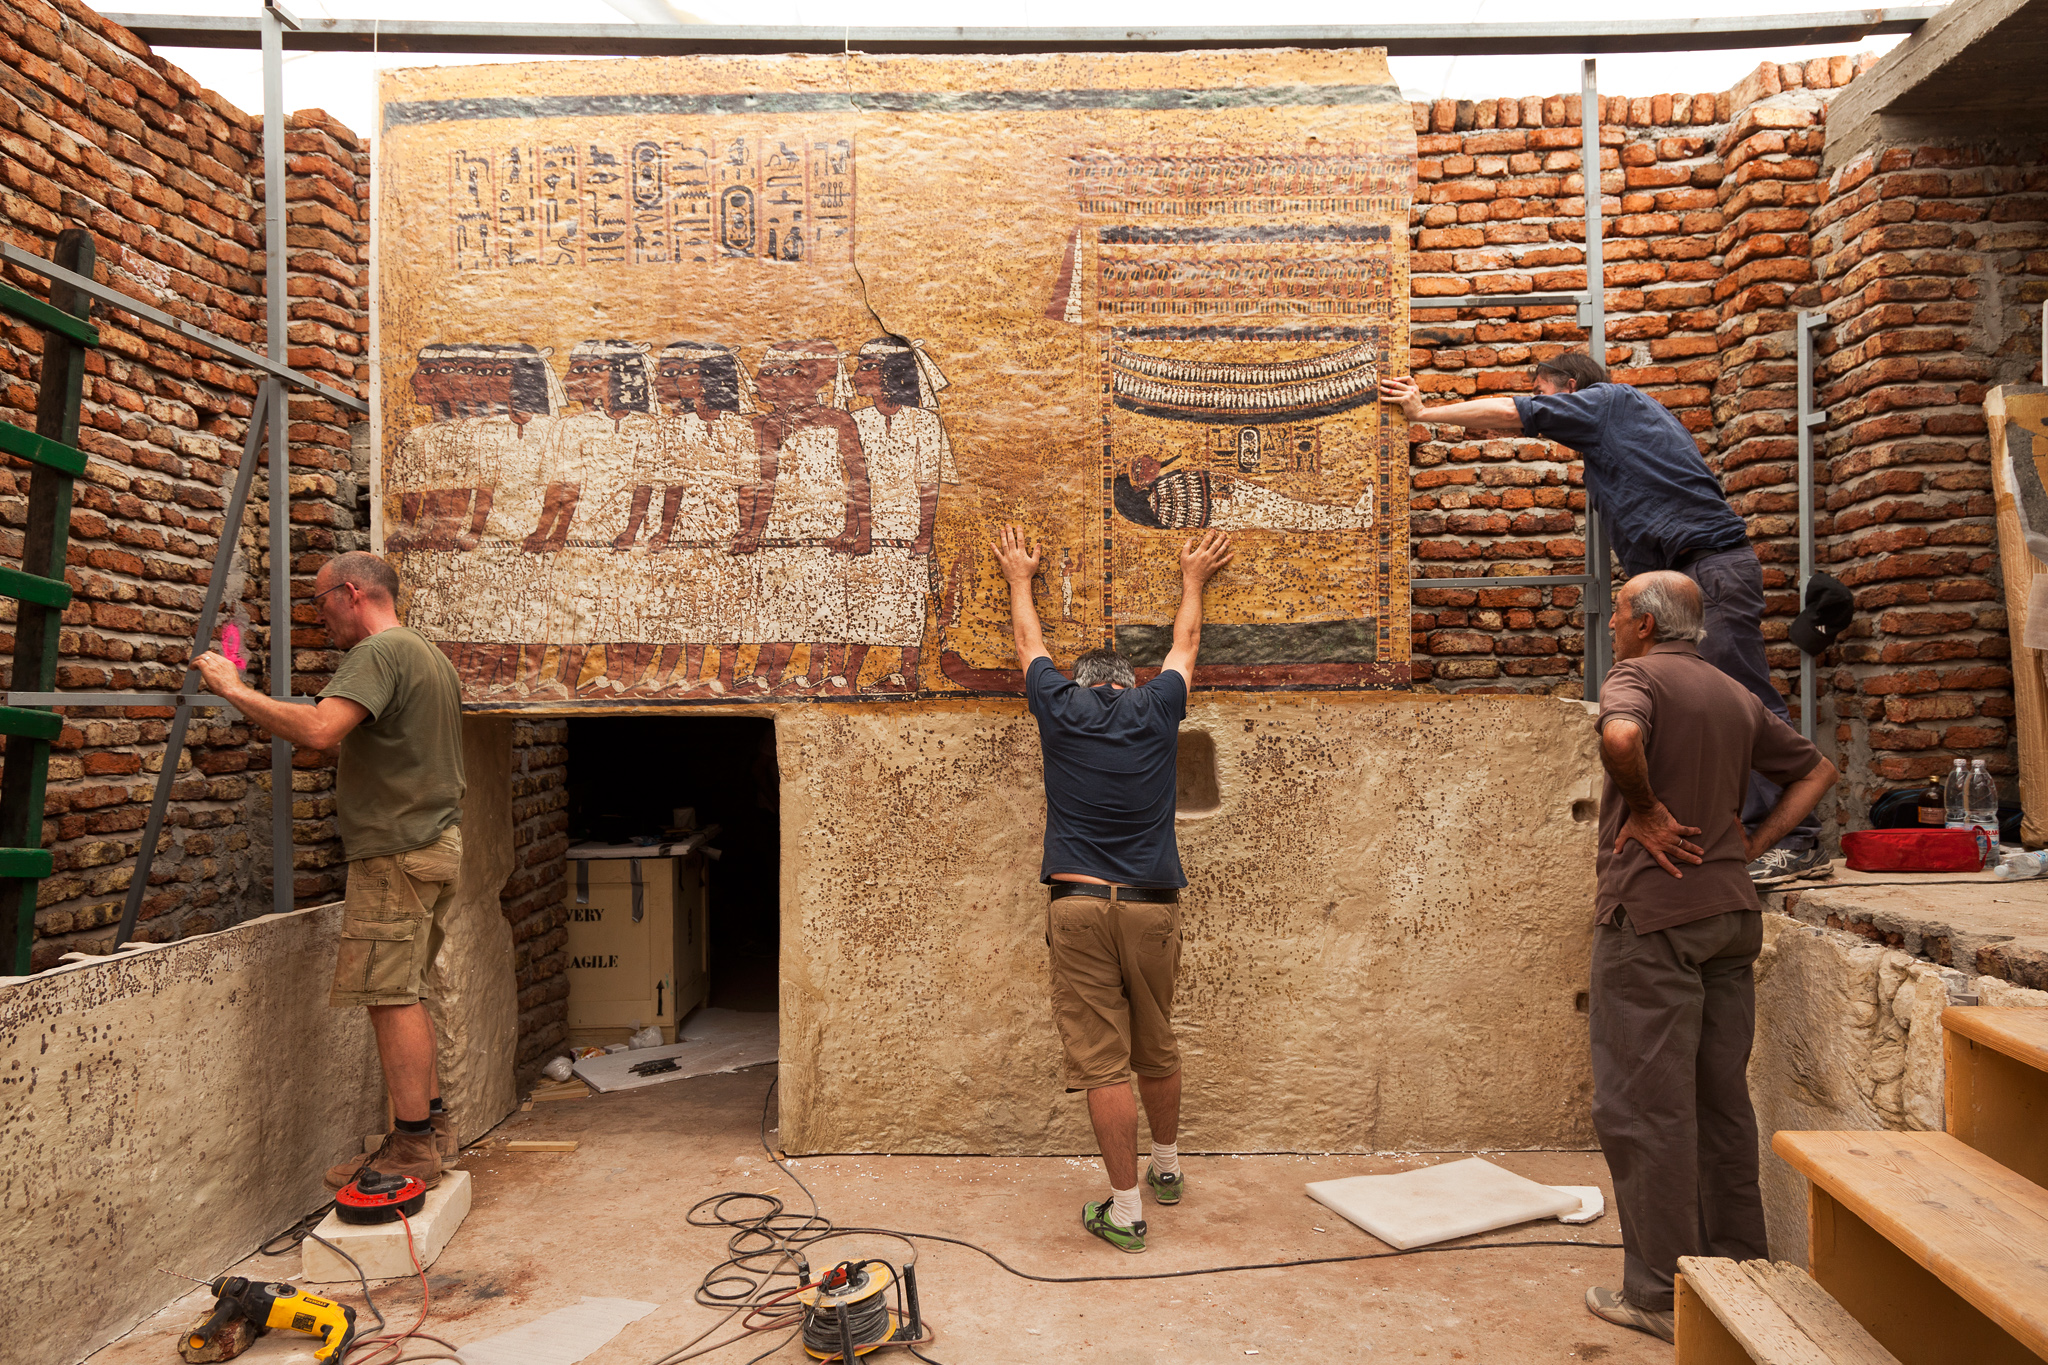 Carter's House & the Replica Tomb of Tutankhamun Luxor, Tut's Tomb: A Replica Fit for a King